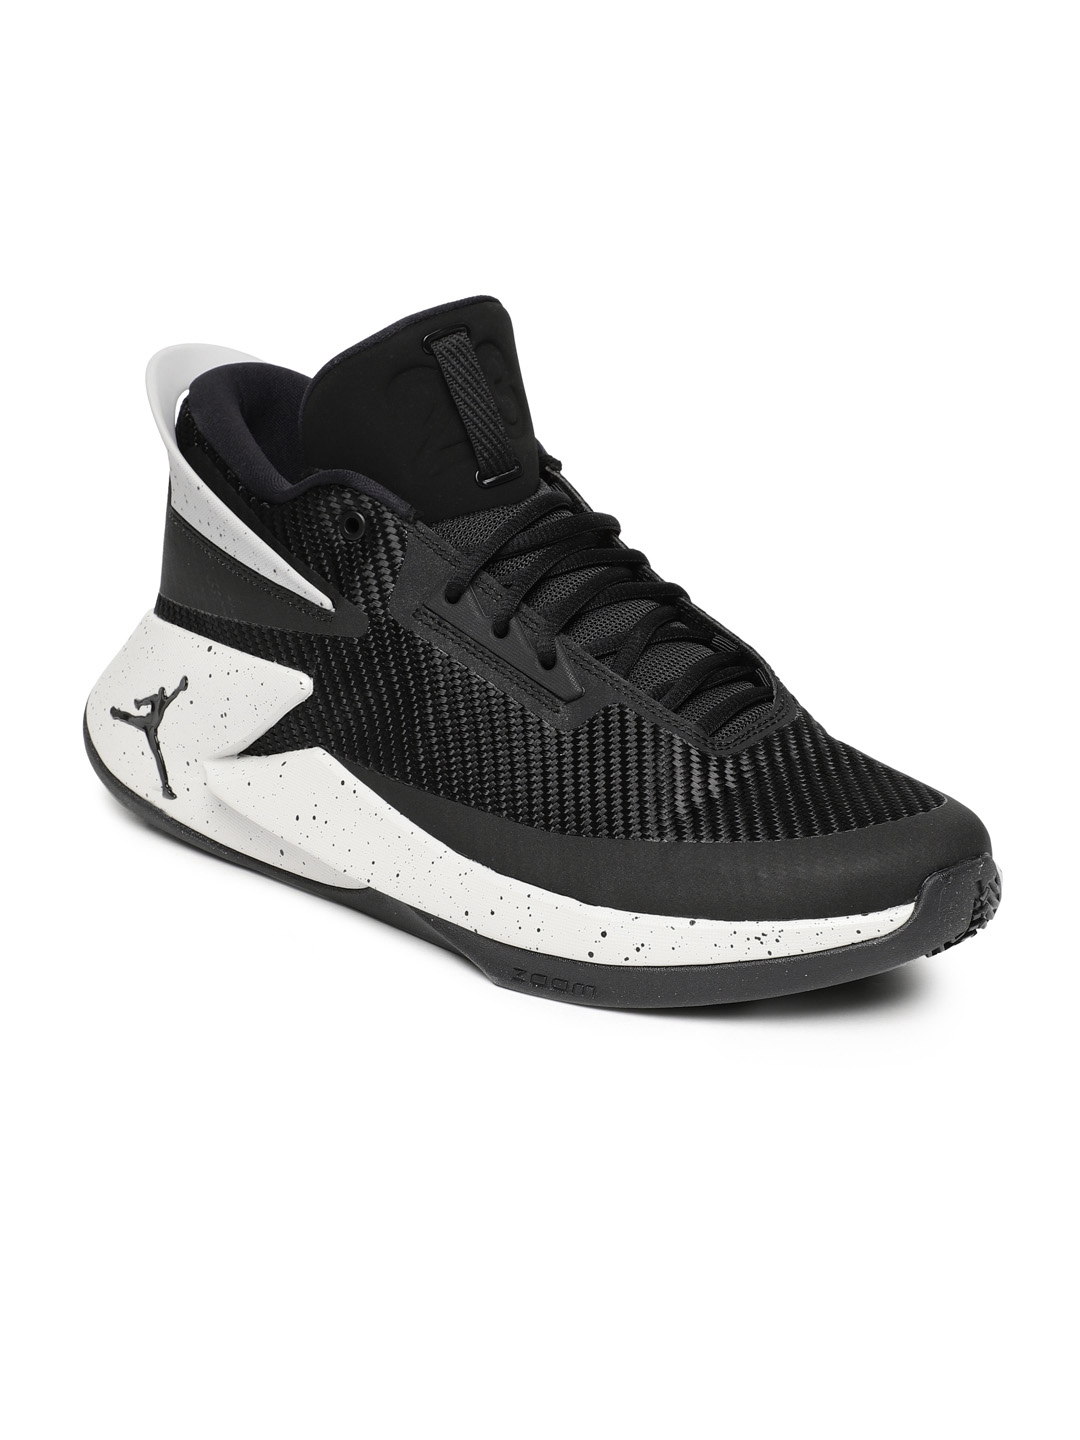 909f2de5843d9 Buy Nike Men Black Jordan Fly Lockdown Basketball Sport Shoes ...